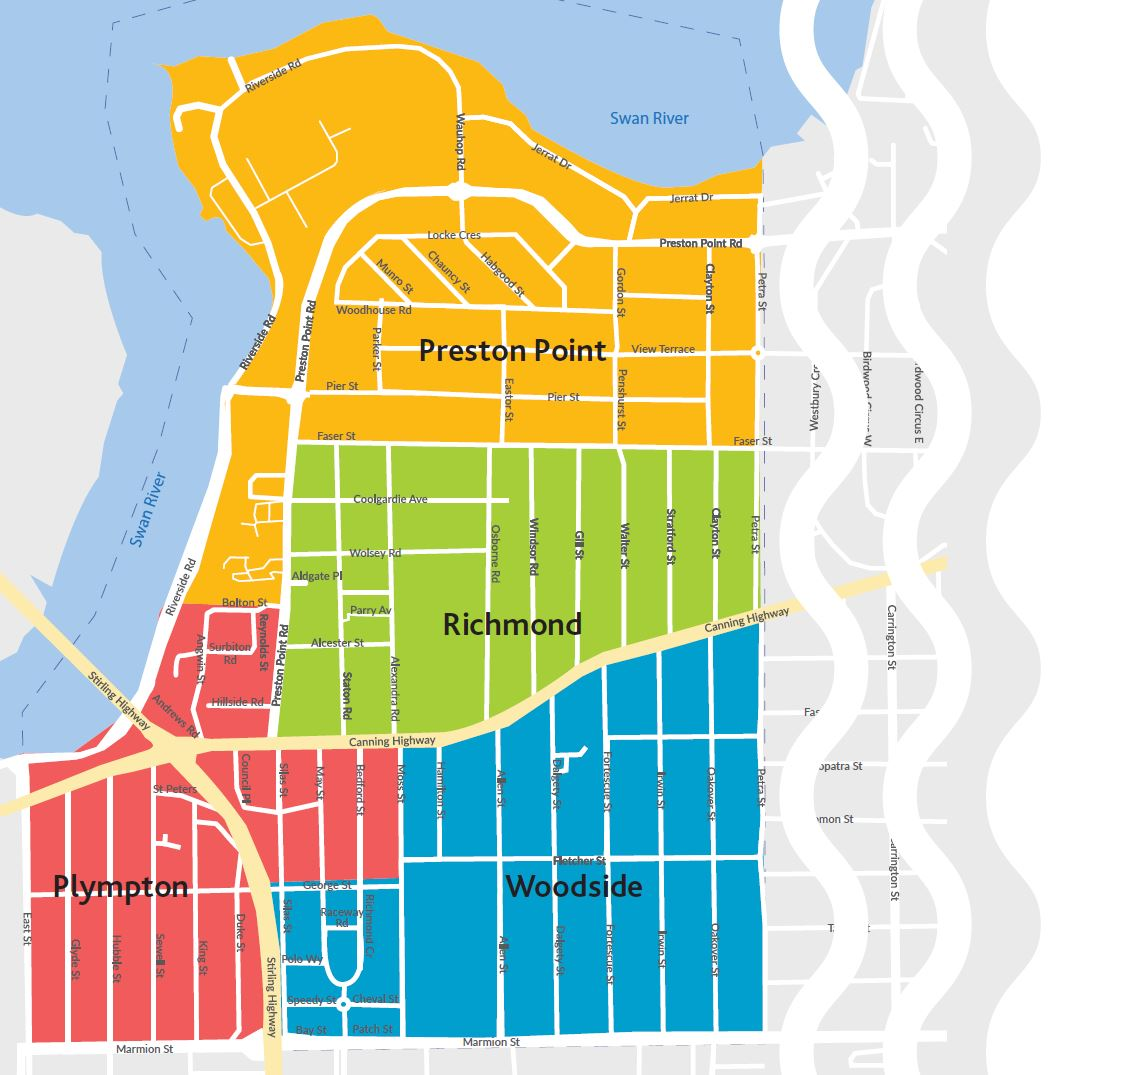 Town of East Fremantle Ward Map